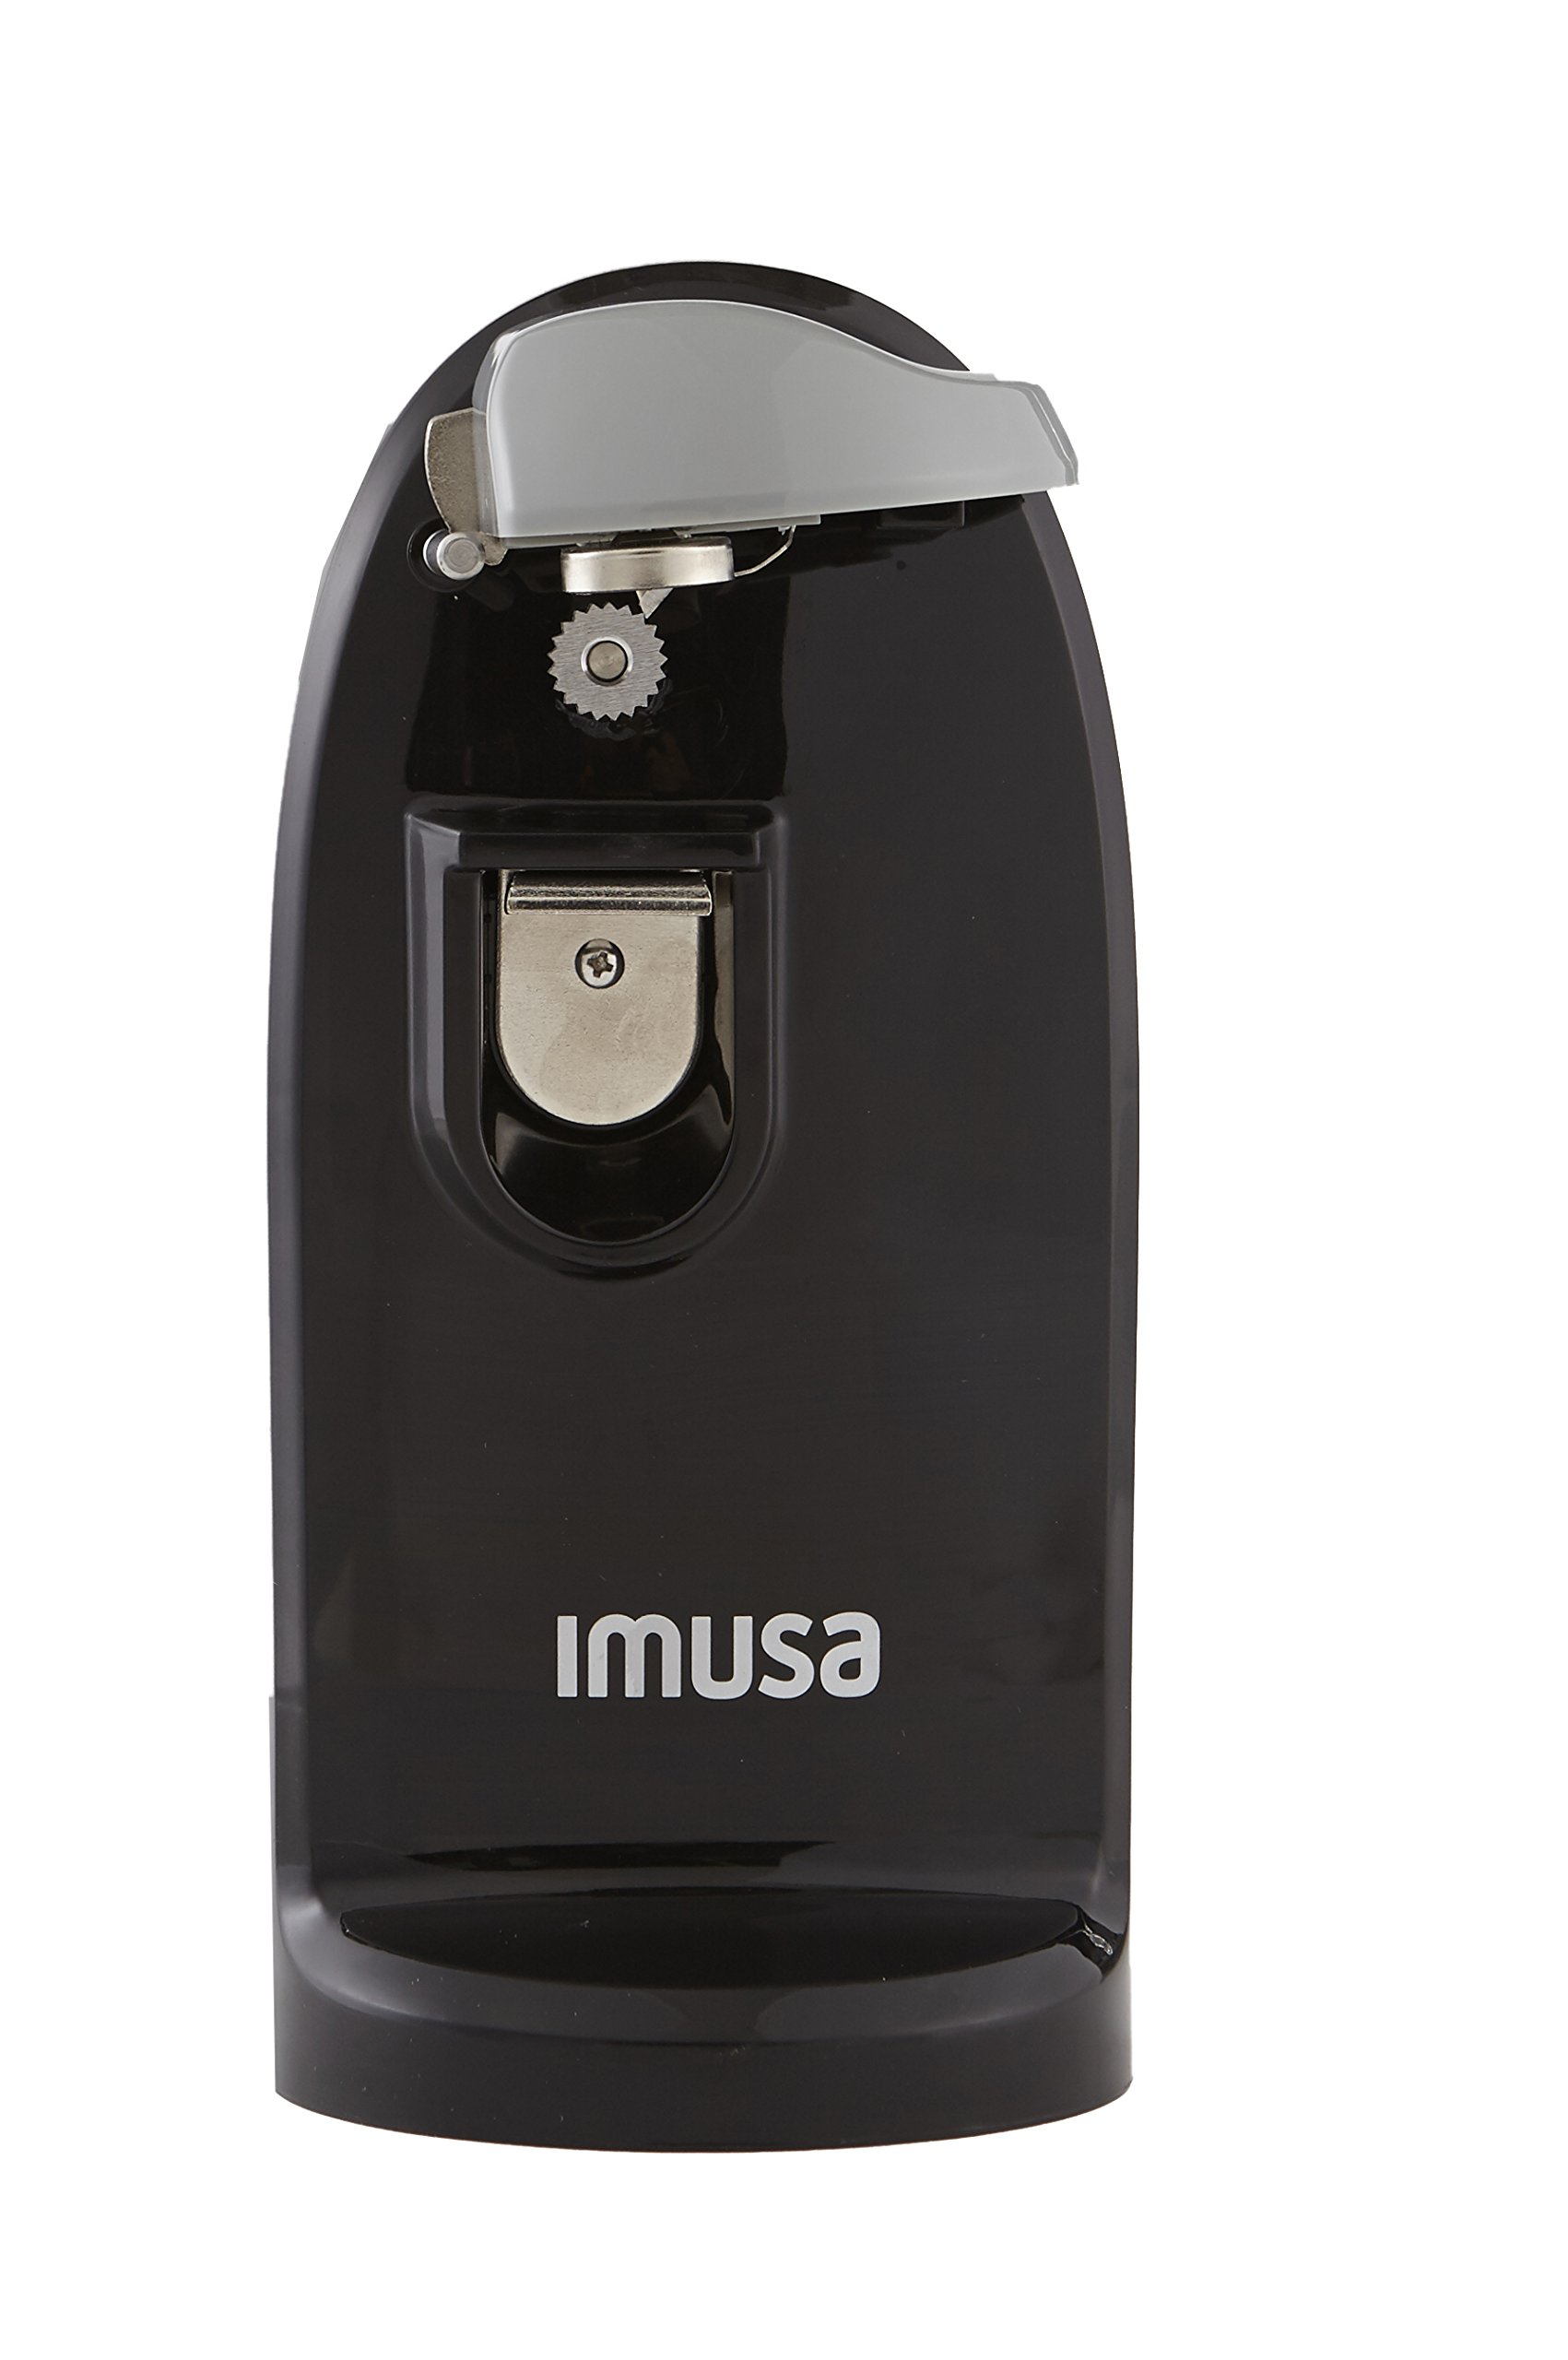 IMUSA USA GAU-80322B Electric Can Opener with Bottle Opener and Knife Sharpener, Black